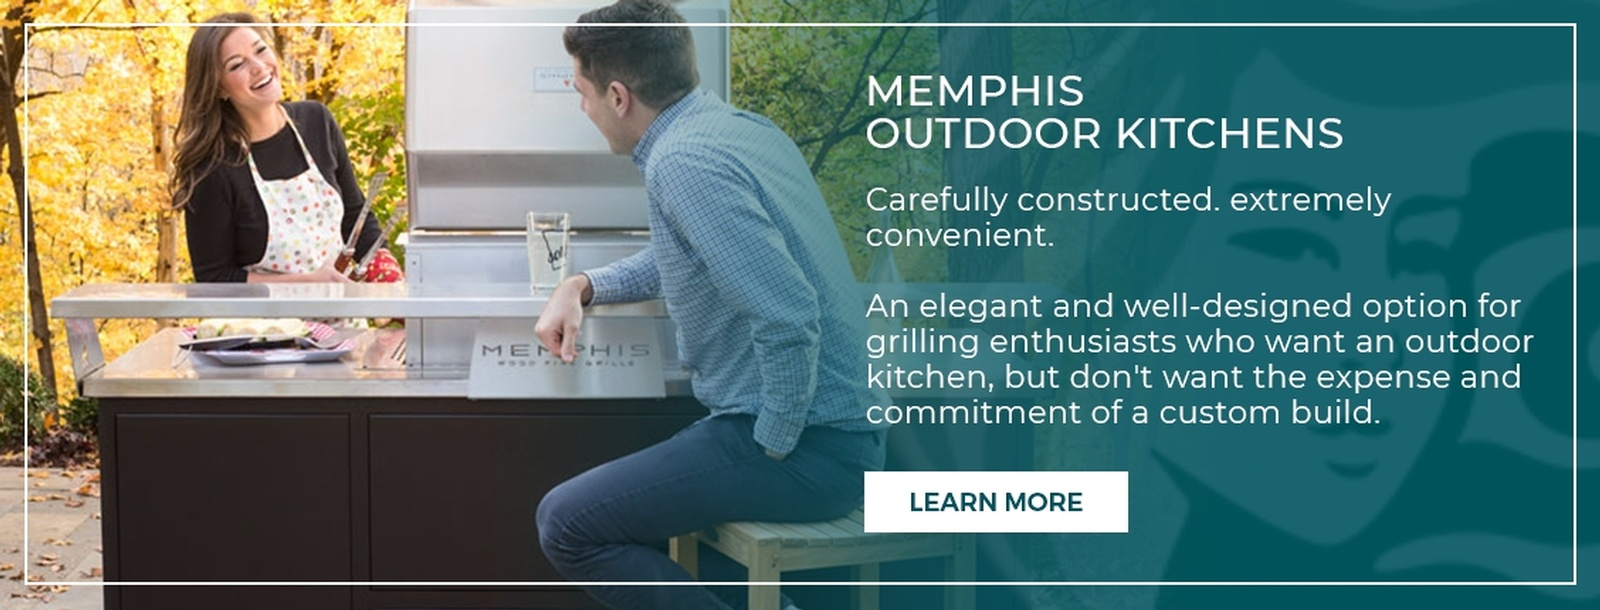 Memphis Outdoor Kitchens. Carefully Constructed, Extremely Convinient